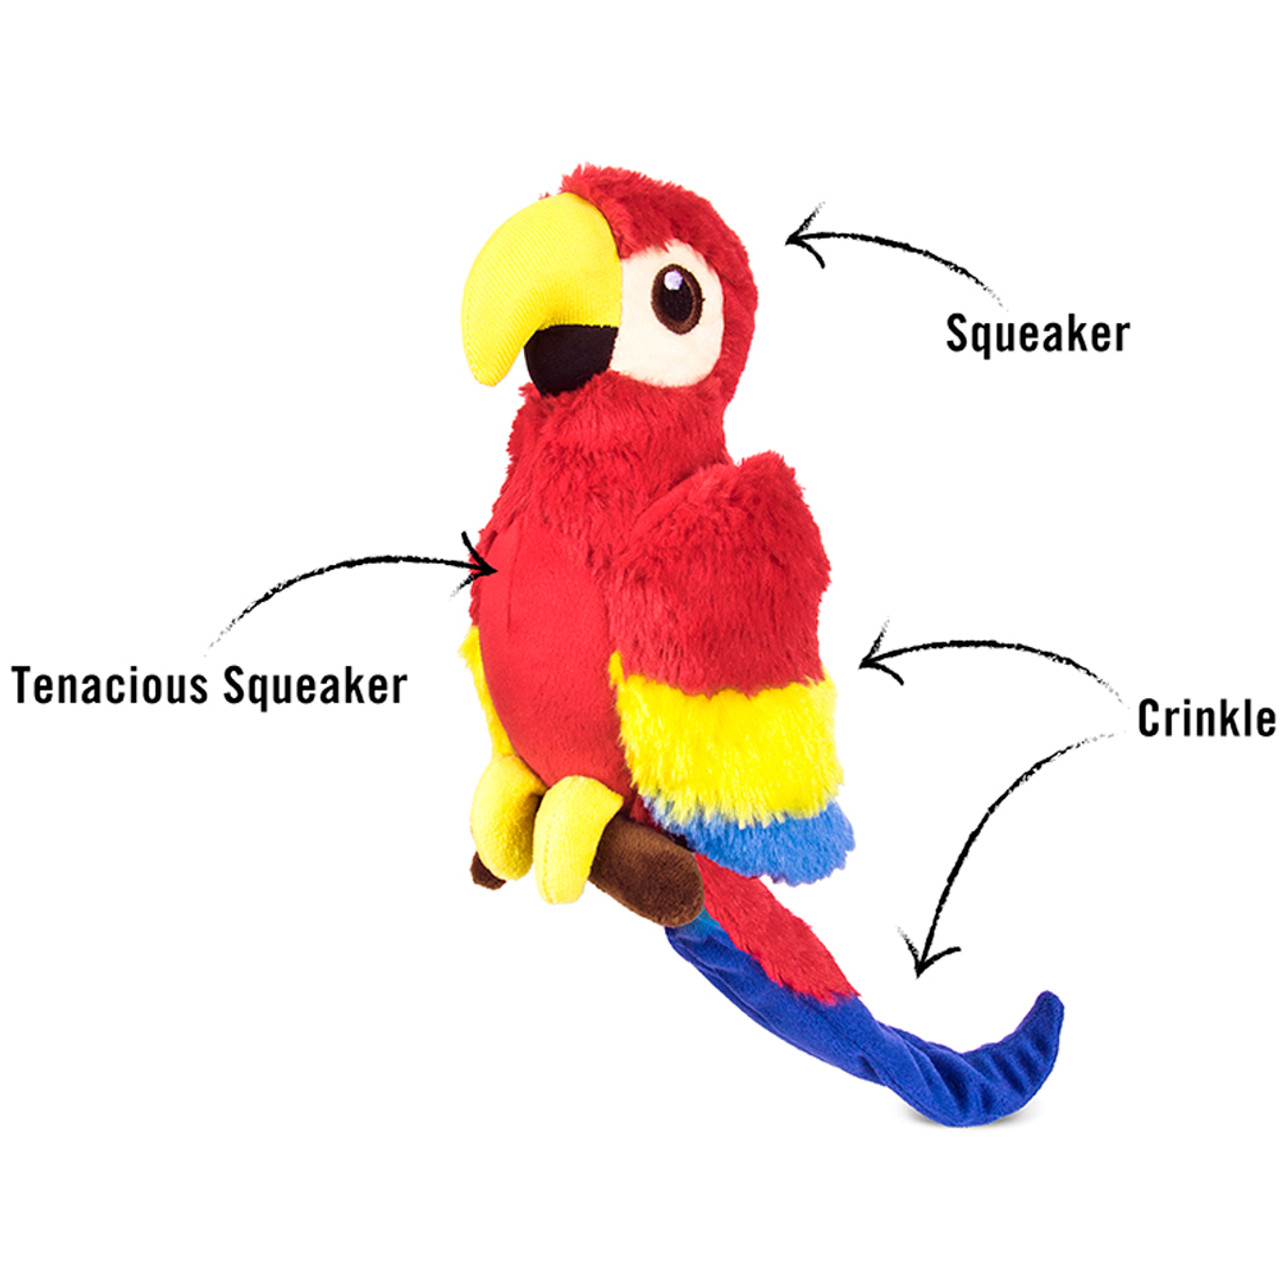 P.L.A.Y. Fletching Flock Tito The Toucan Plush Dog Toy